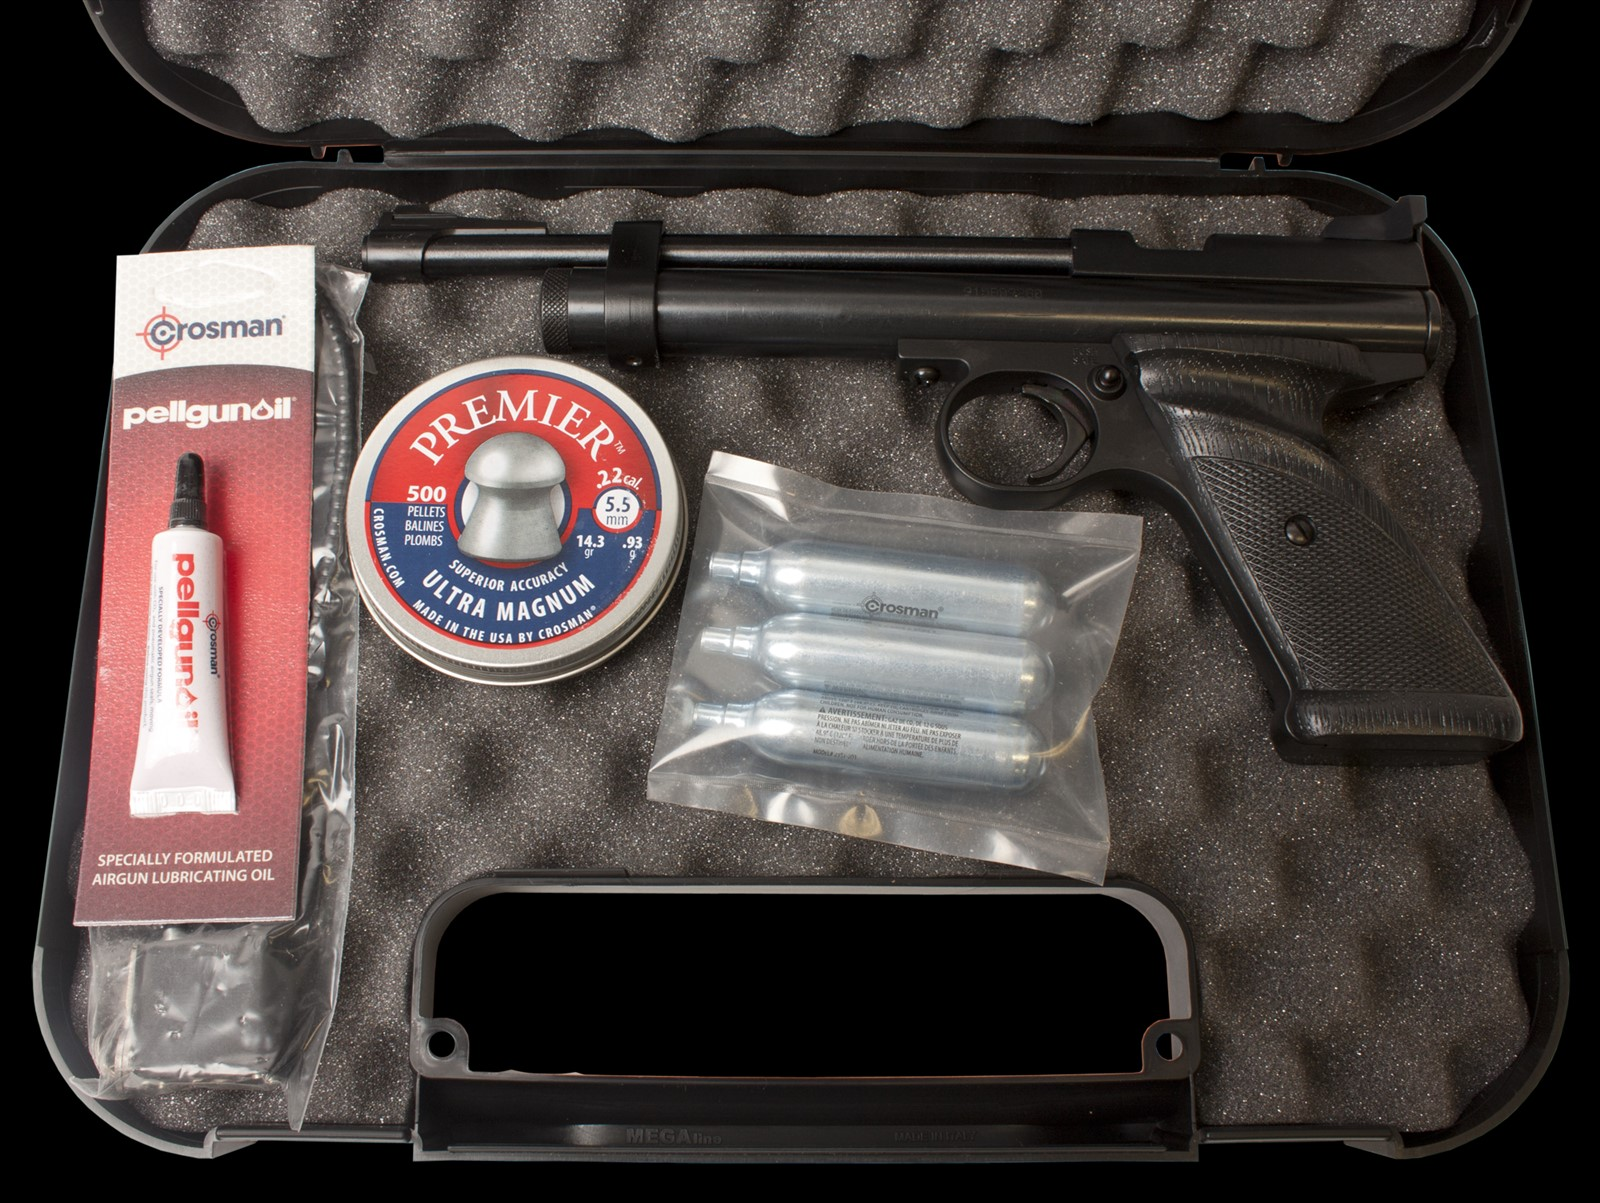 Crosman 2240 starter Kit.